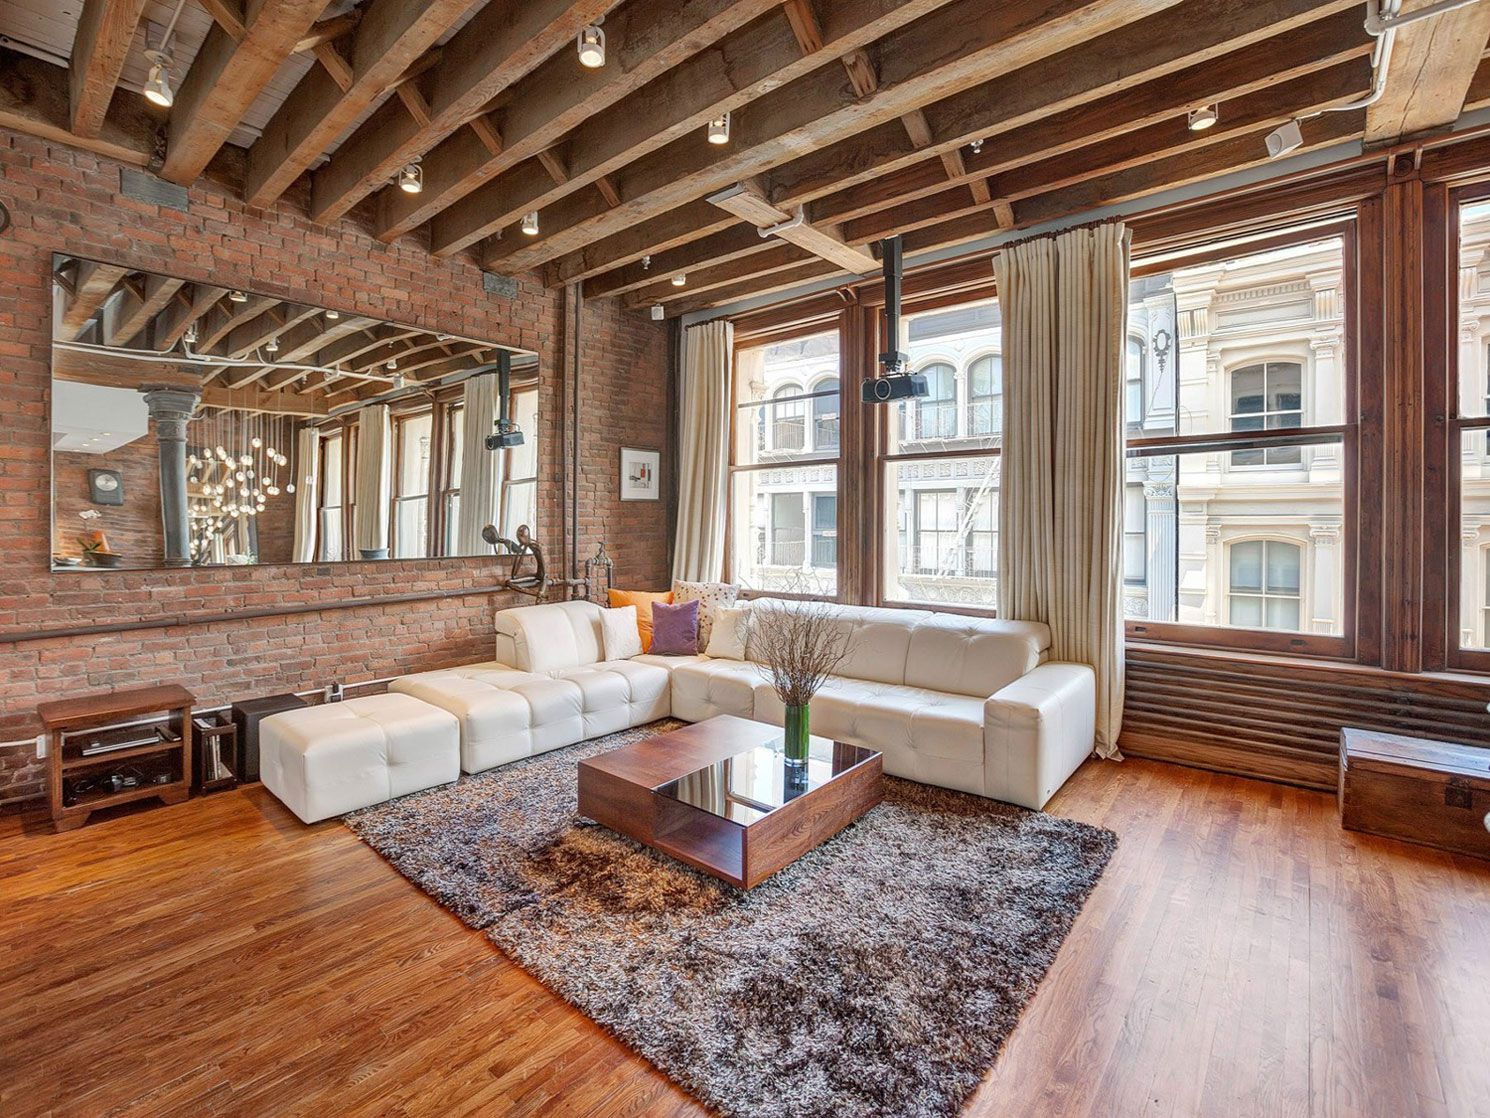 Ultimate Soho Exposed Brick And Wood Beams Loft On Prince Street In New York 03